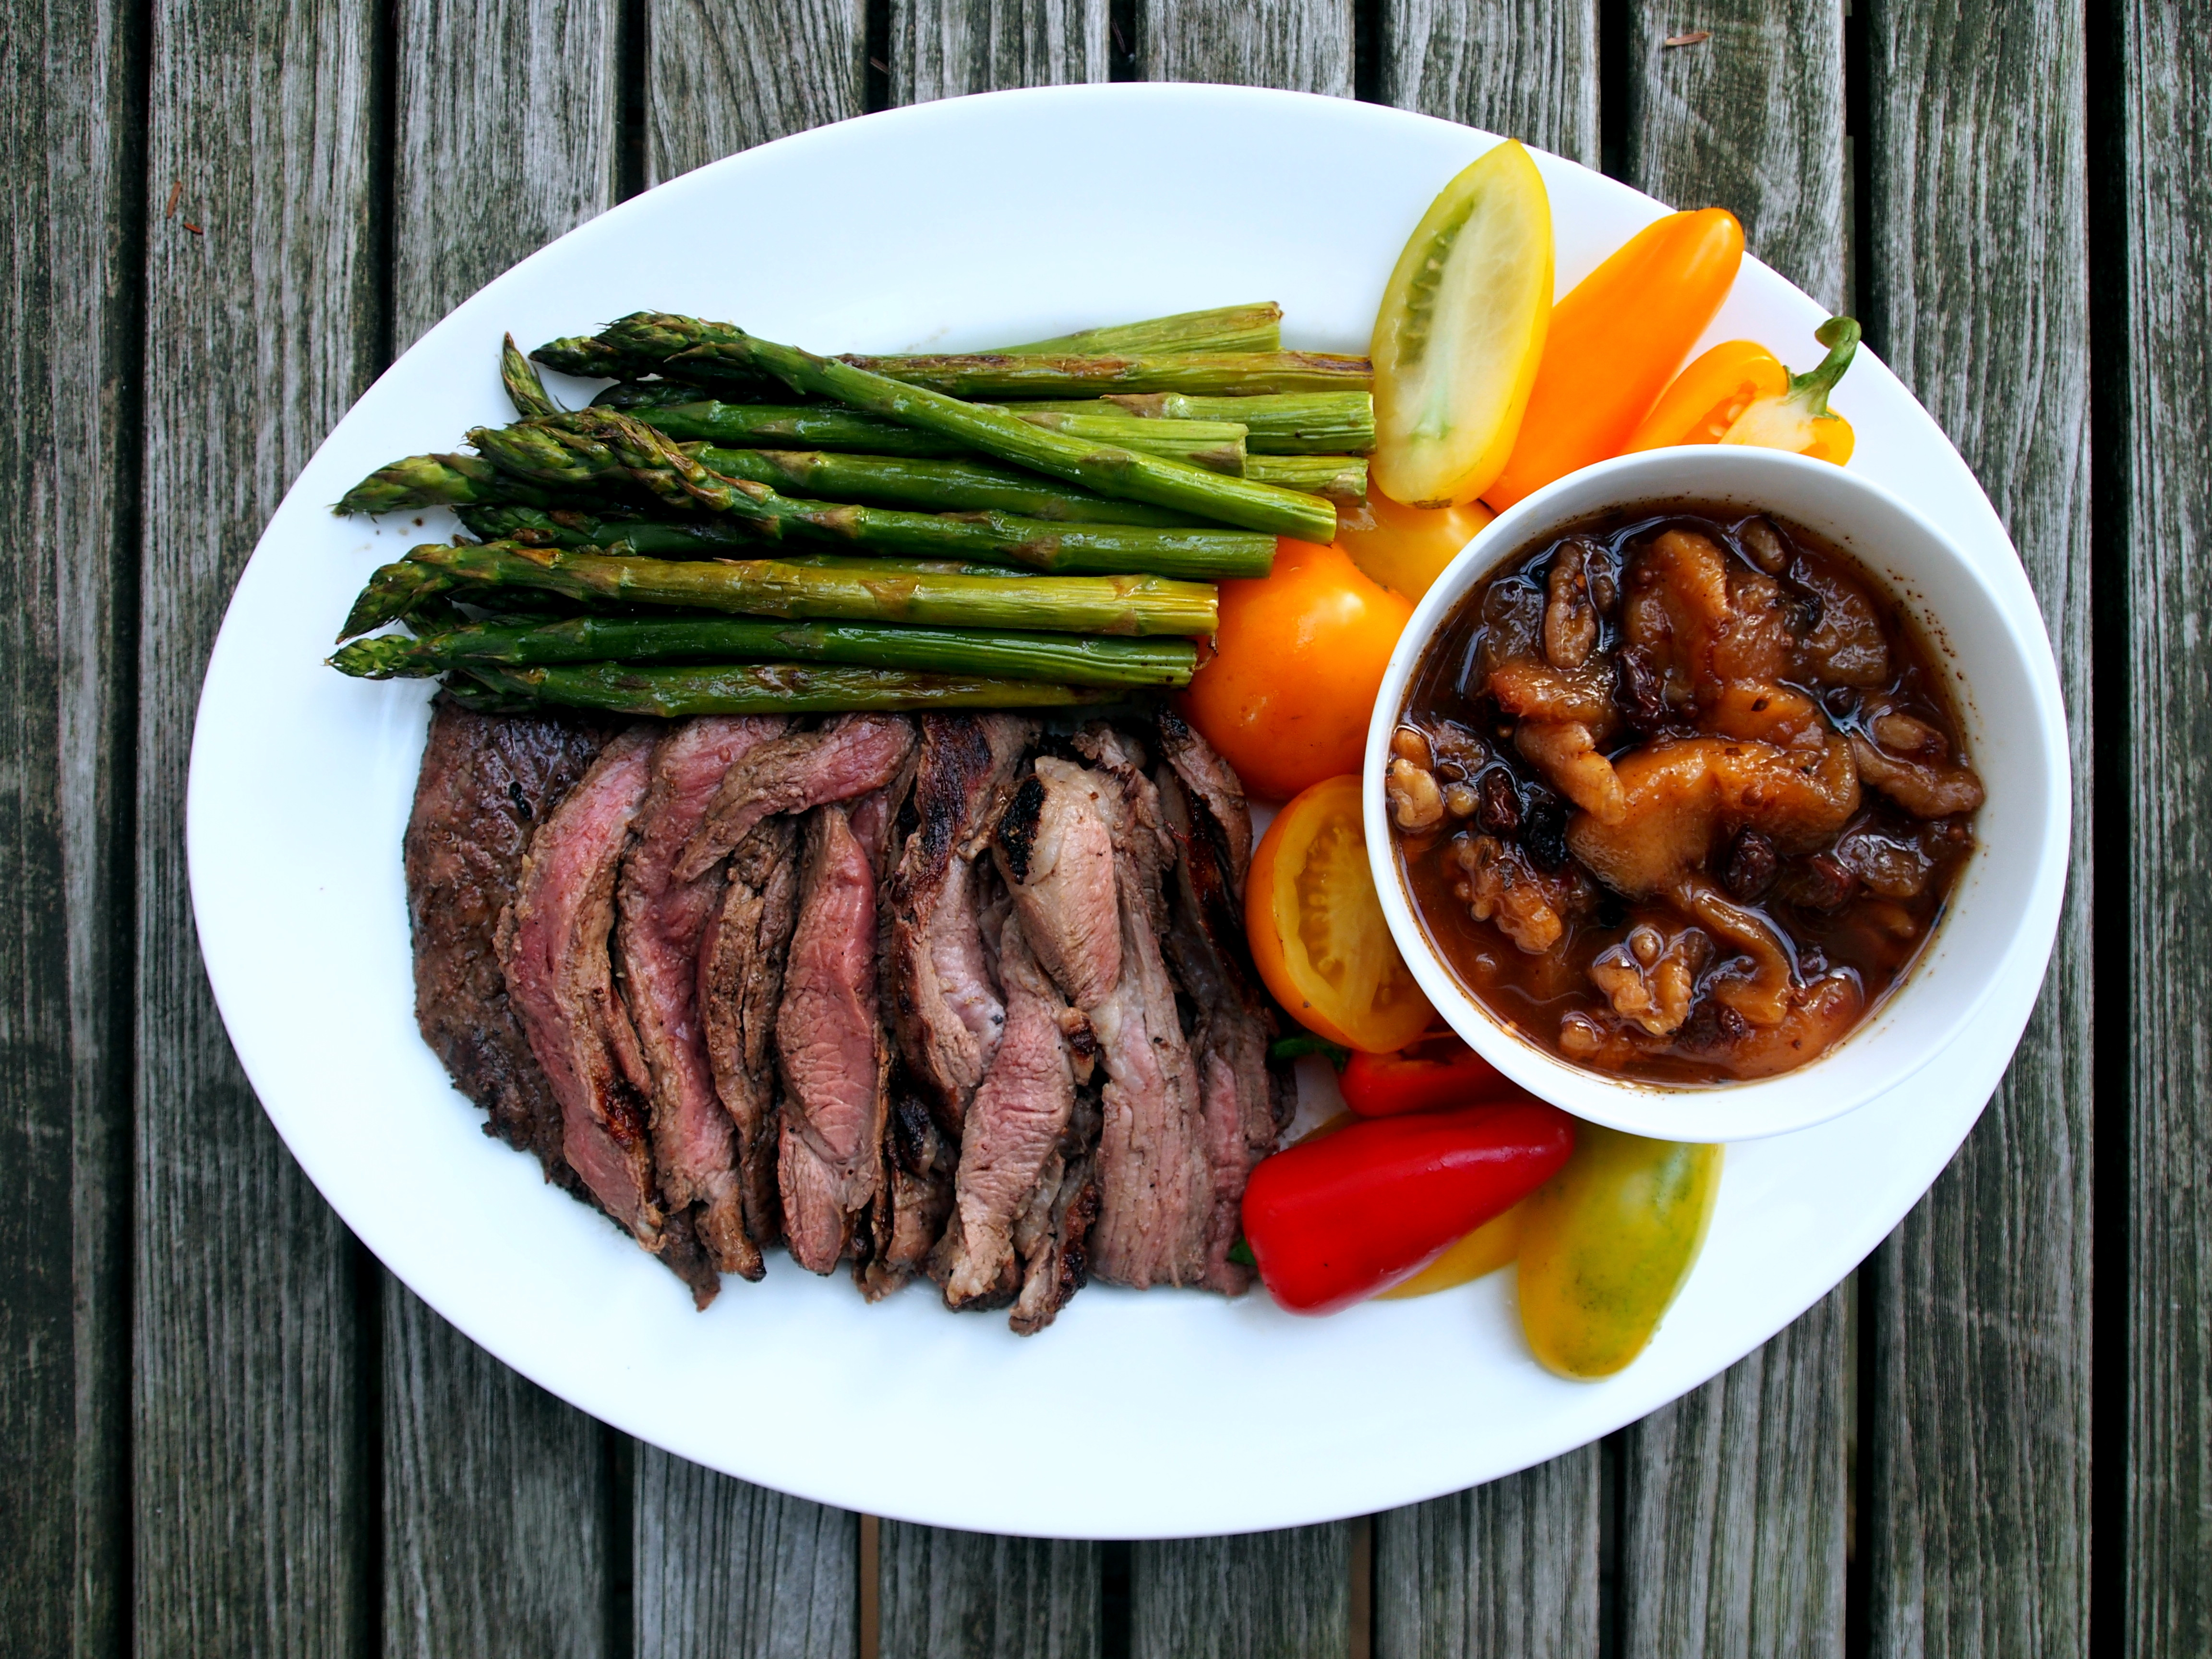 GRILLED BUTTERFLIED LEG OF LAMB – Now You're Cooking!